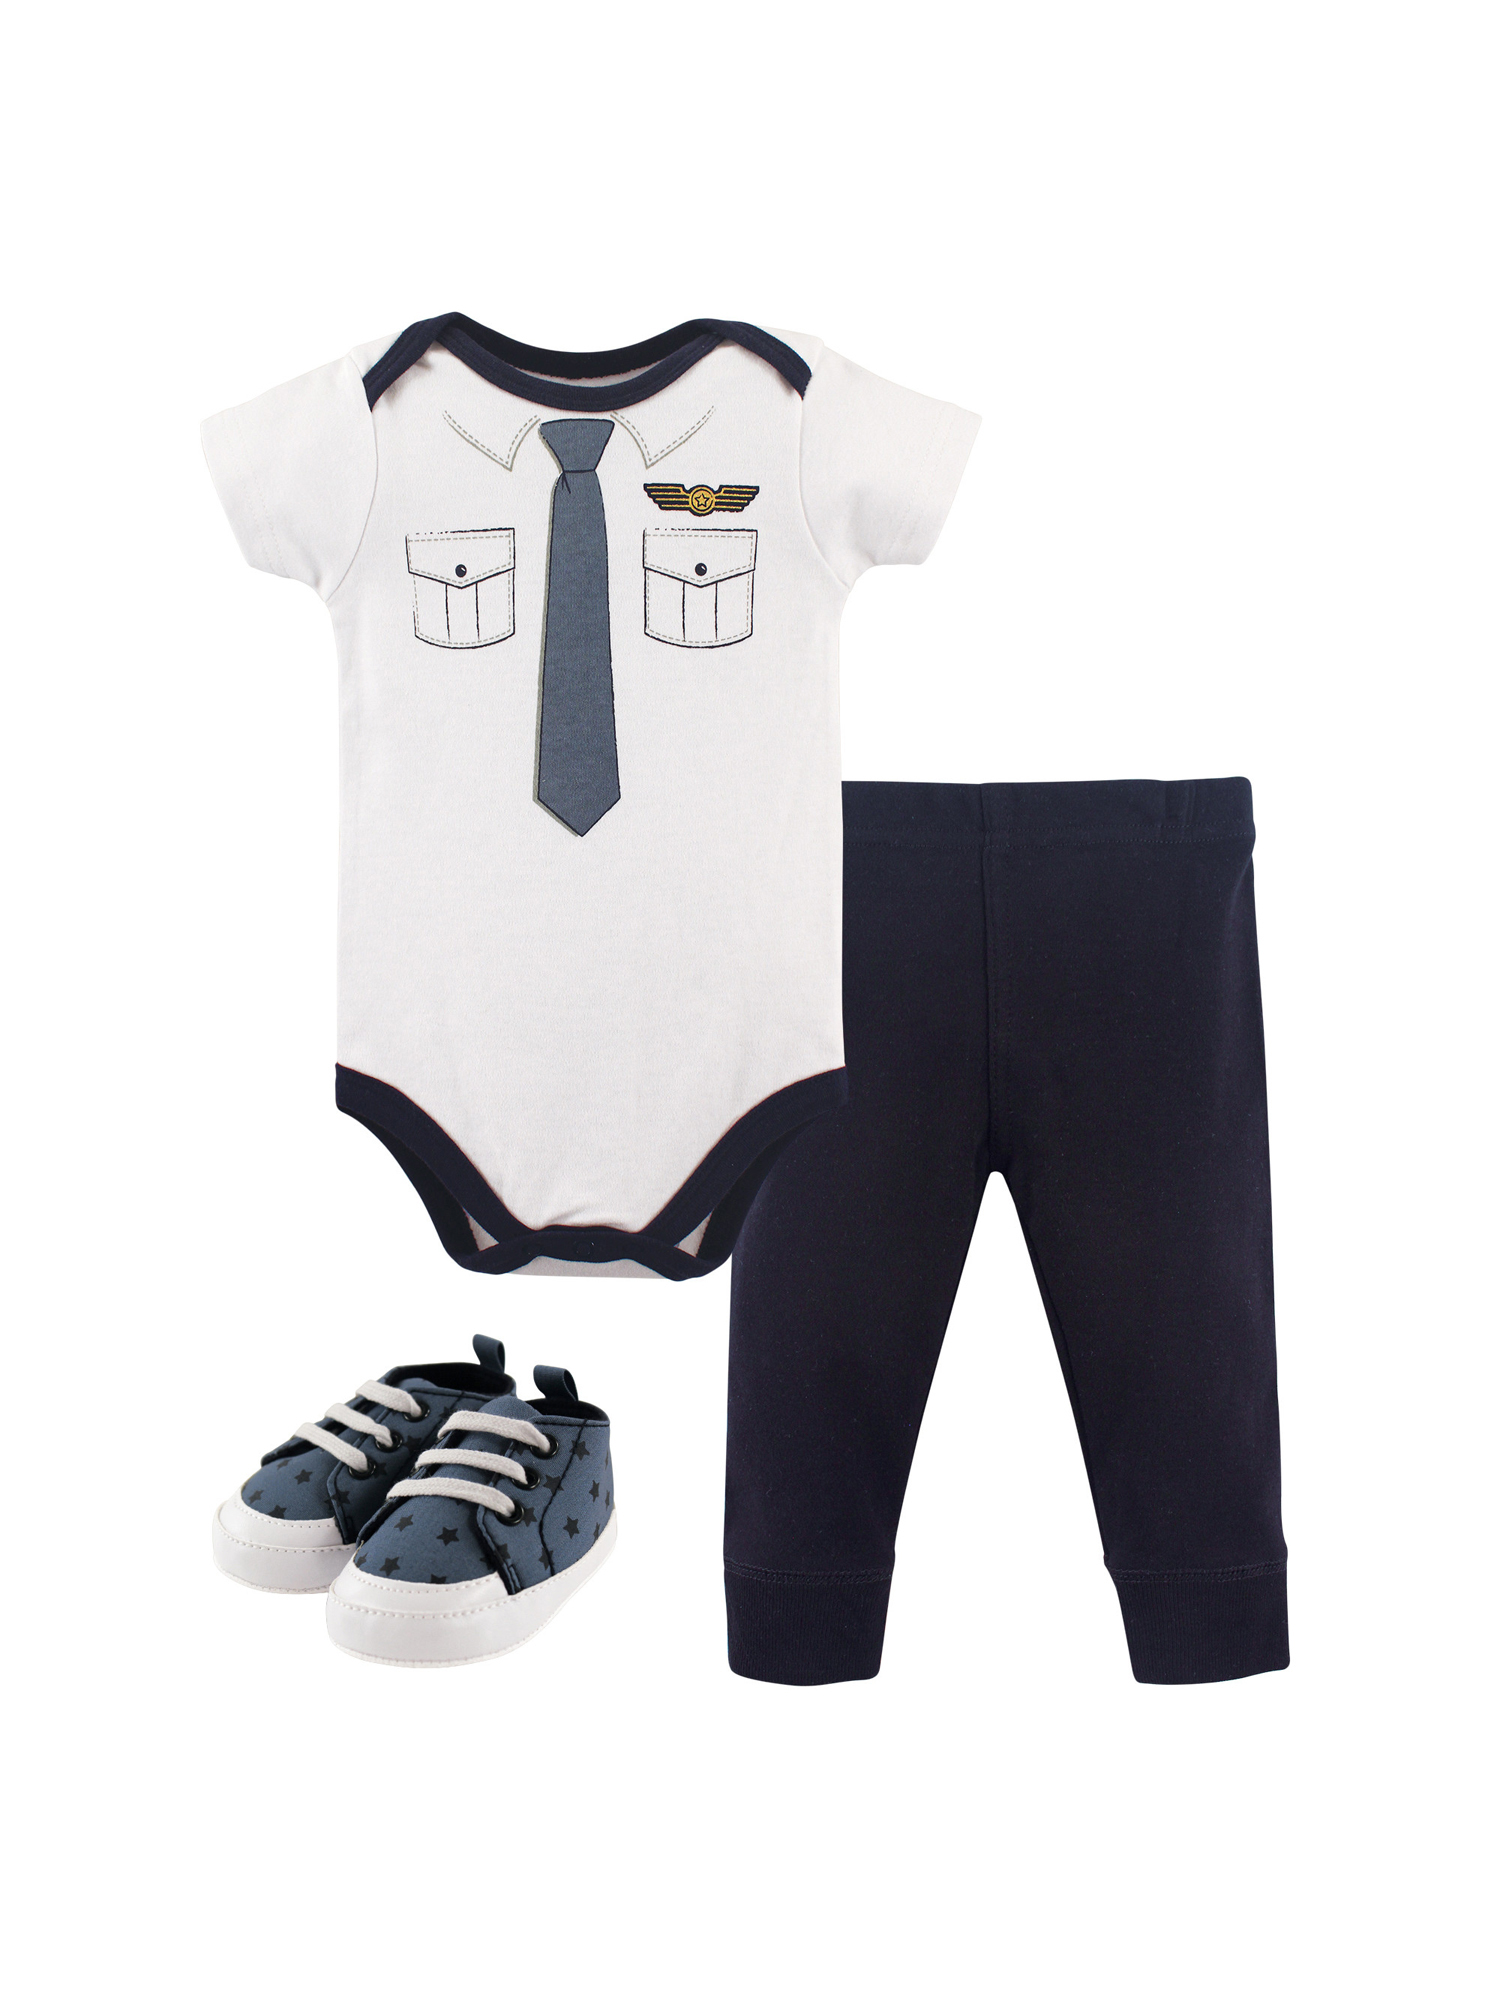 Baby Boys' Bodysuit, Pant & Shoes, 3pc Outfit Set